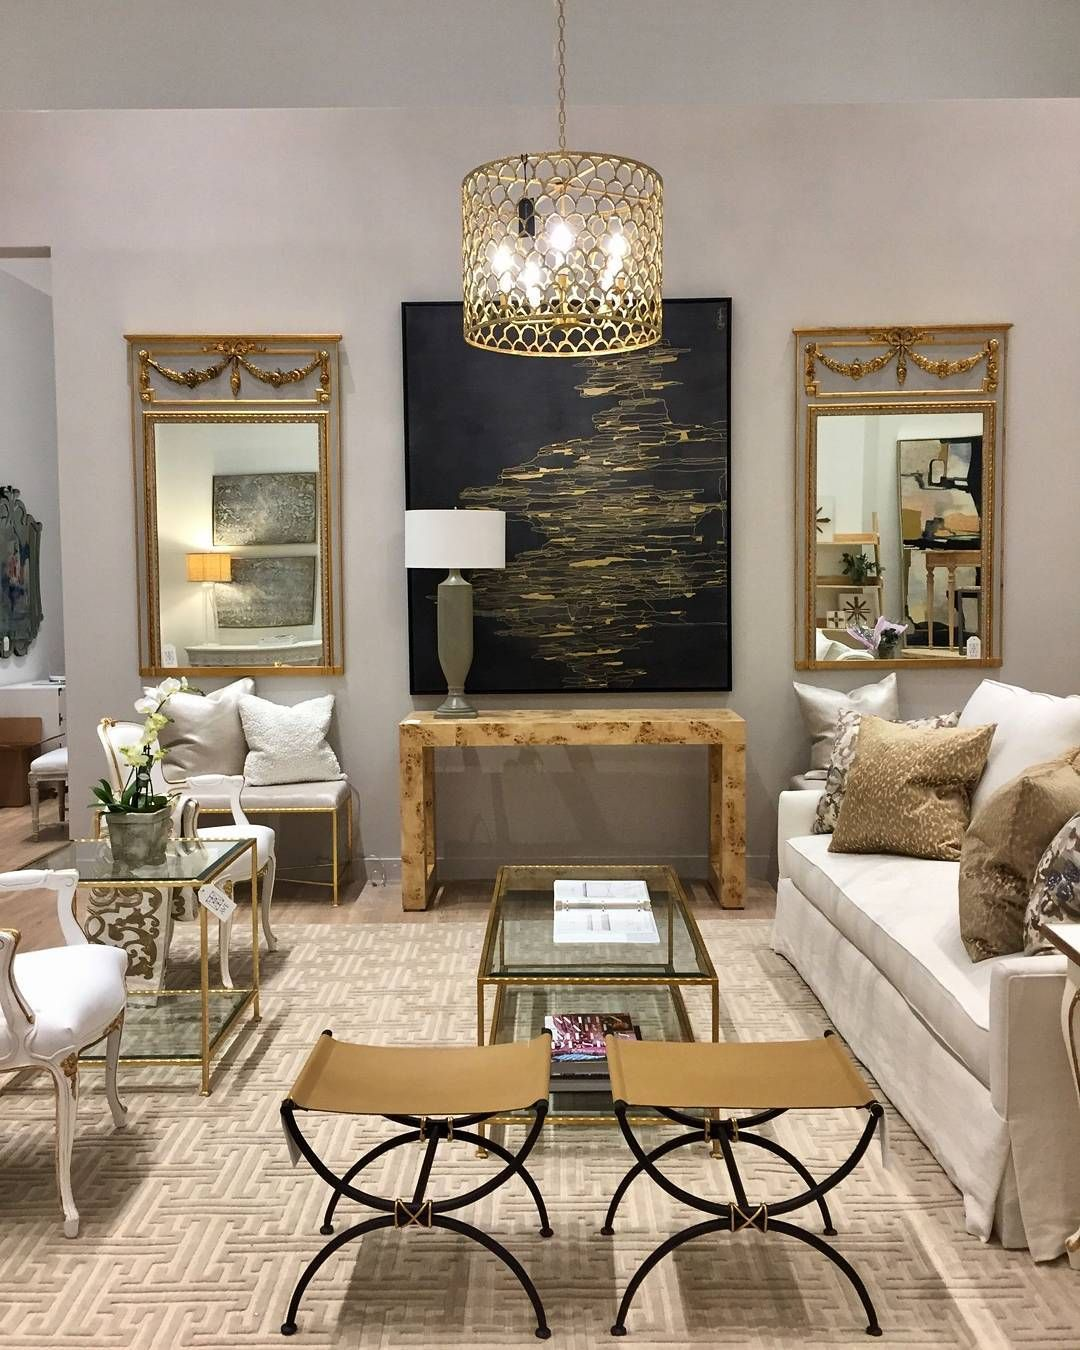 Ave Home Is At The Dallas Design Center In Codarus Showroom Specialty Furniture Company Based New Orleans And Revives Clic By